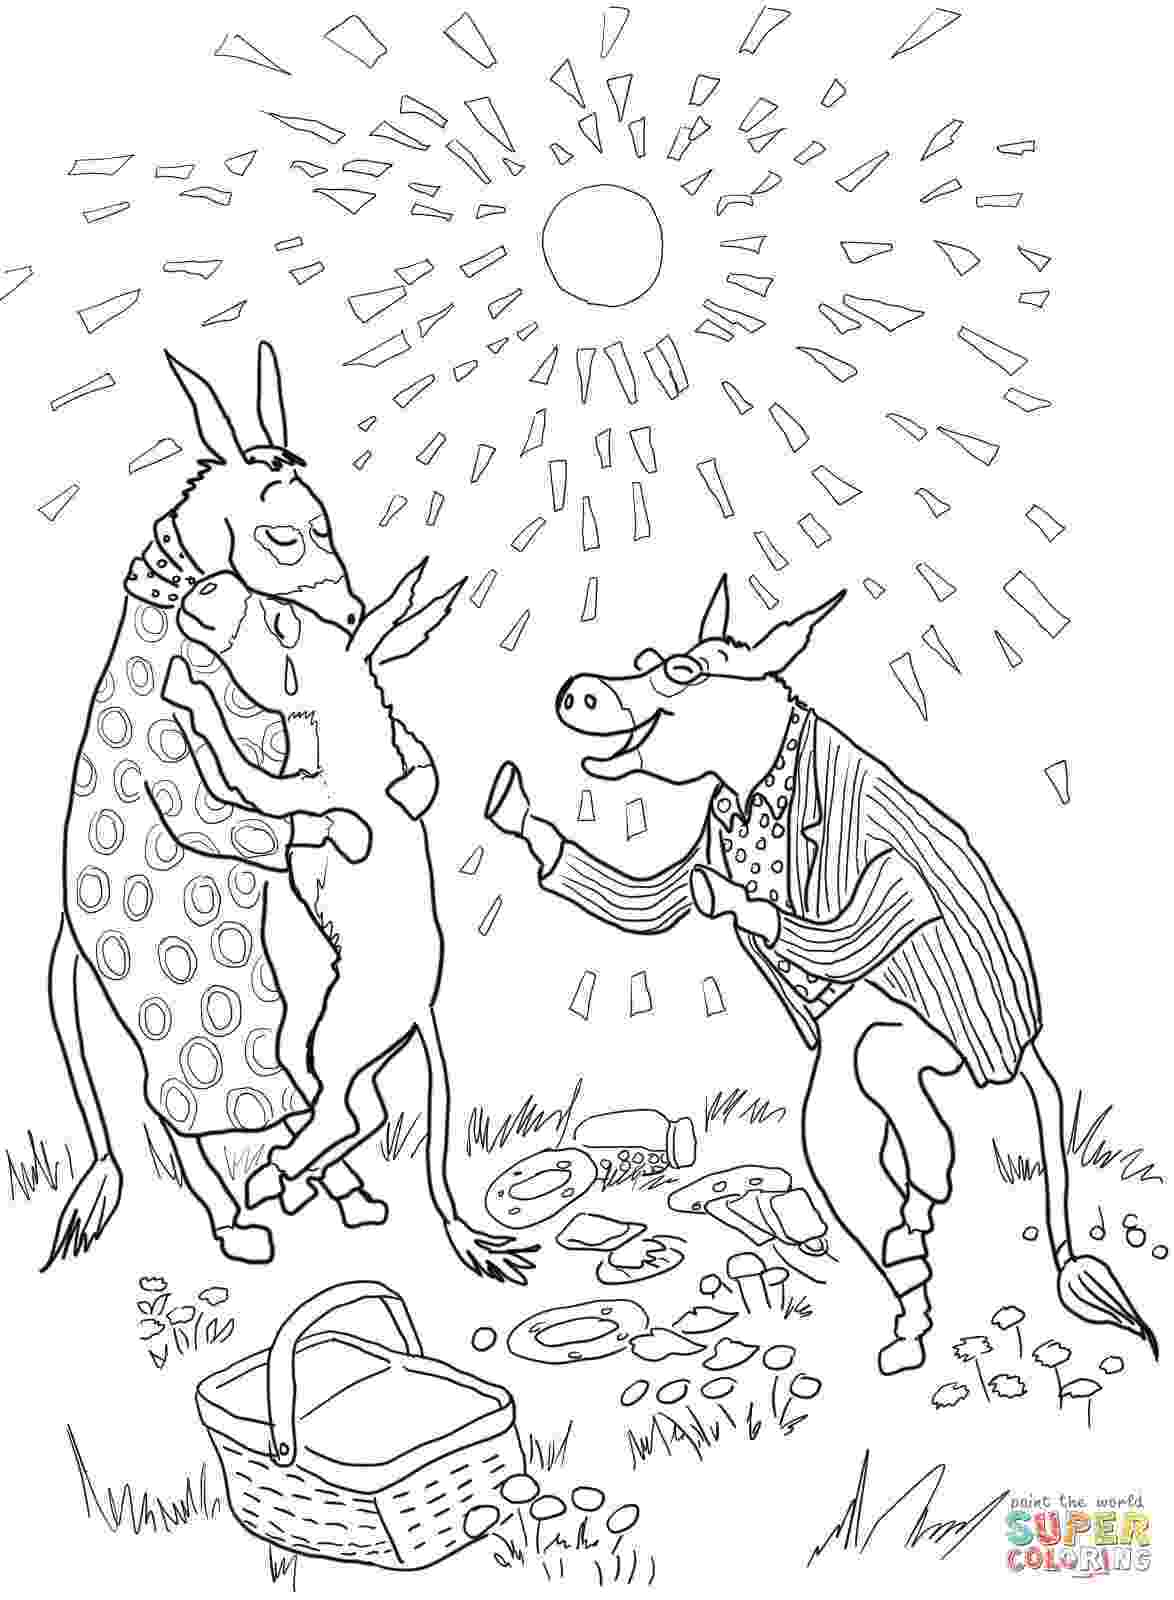 sylvester and the magic pebble coloring page sylvester and the magic pebble coloring page coloring home sylvester magic coloring and pebble the page